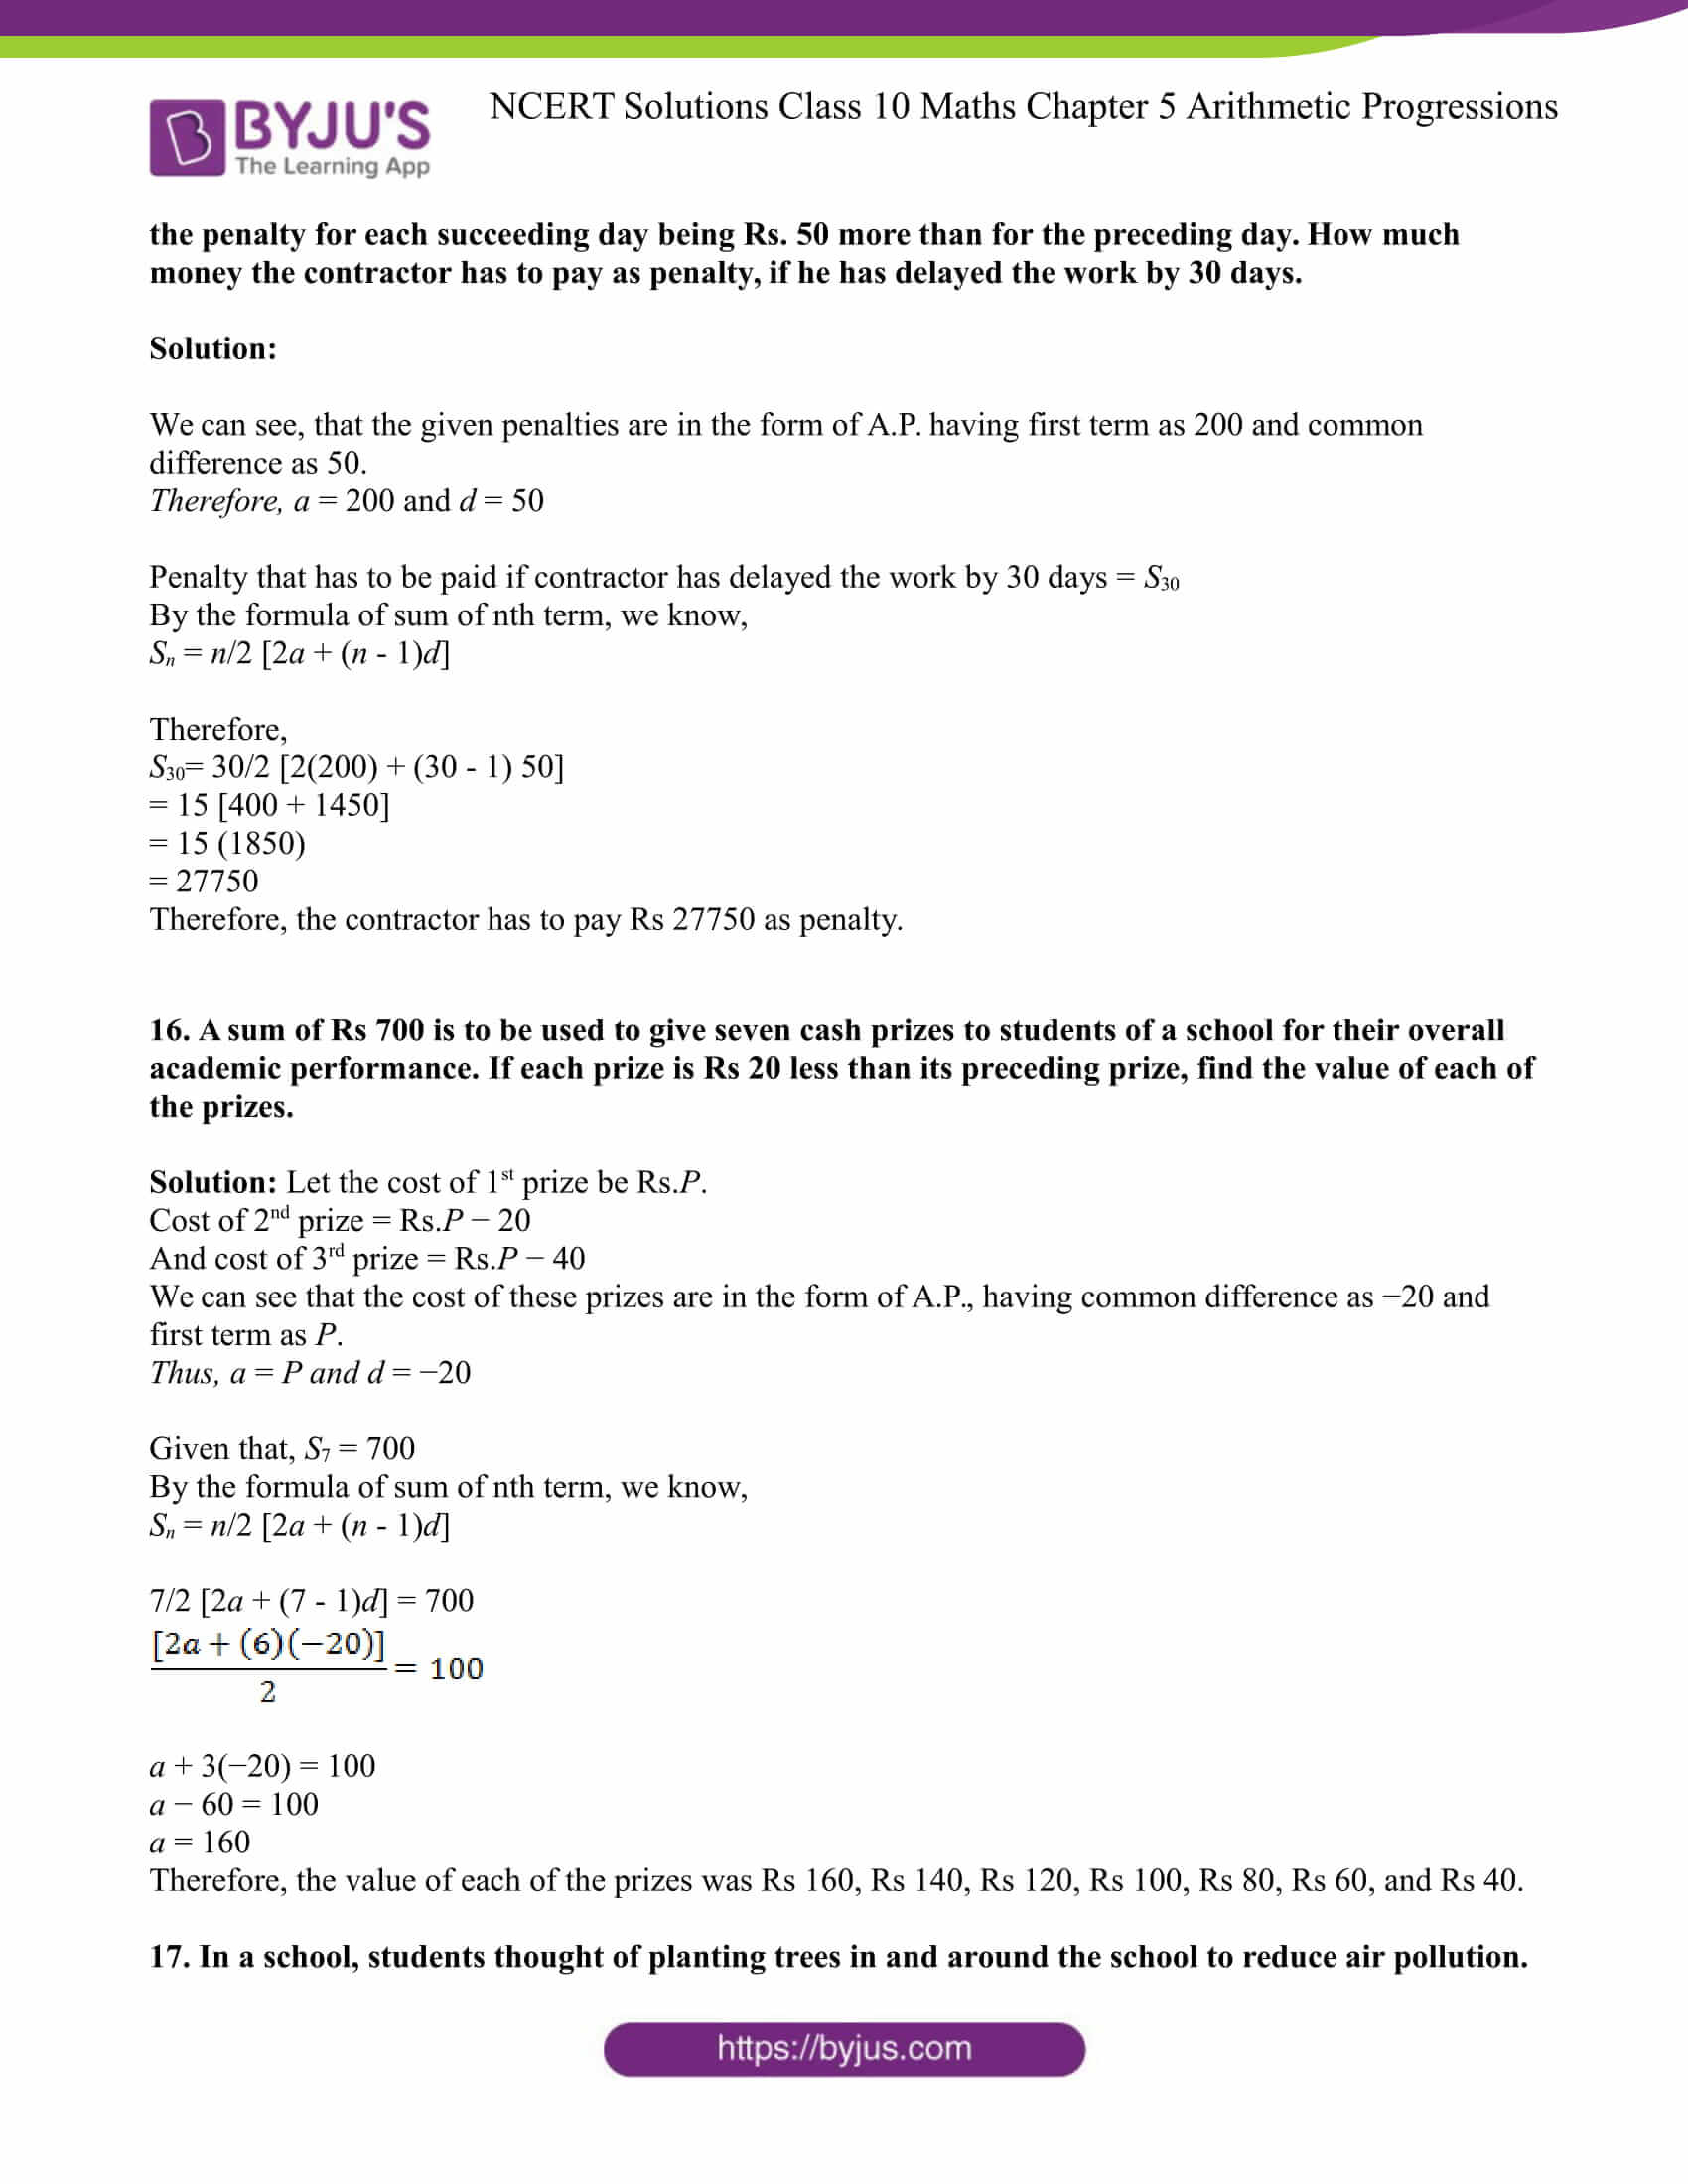 NCERT Solution for CBSE class 10 Maths Chapter 5 Arithmetic Progressions Excercise 5.3 Part 14